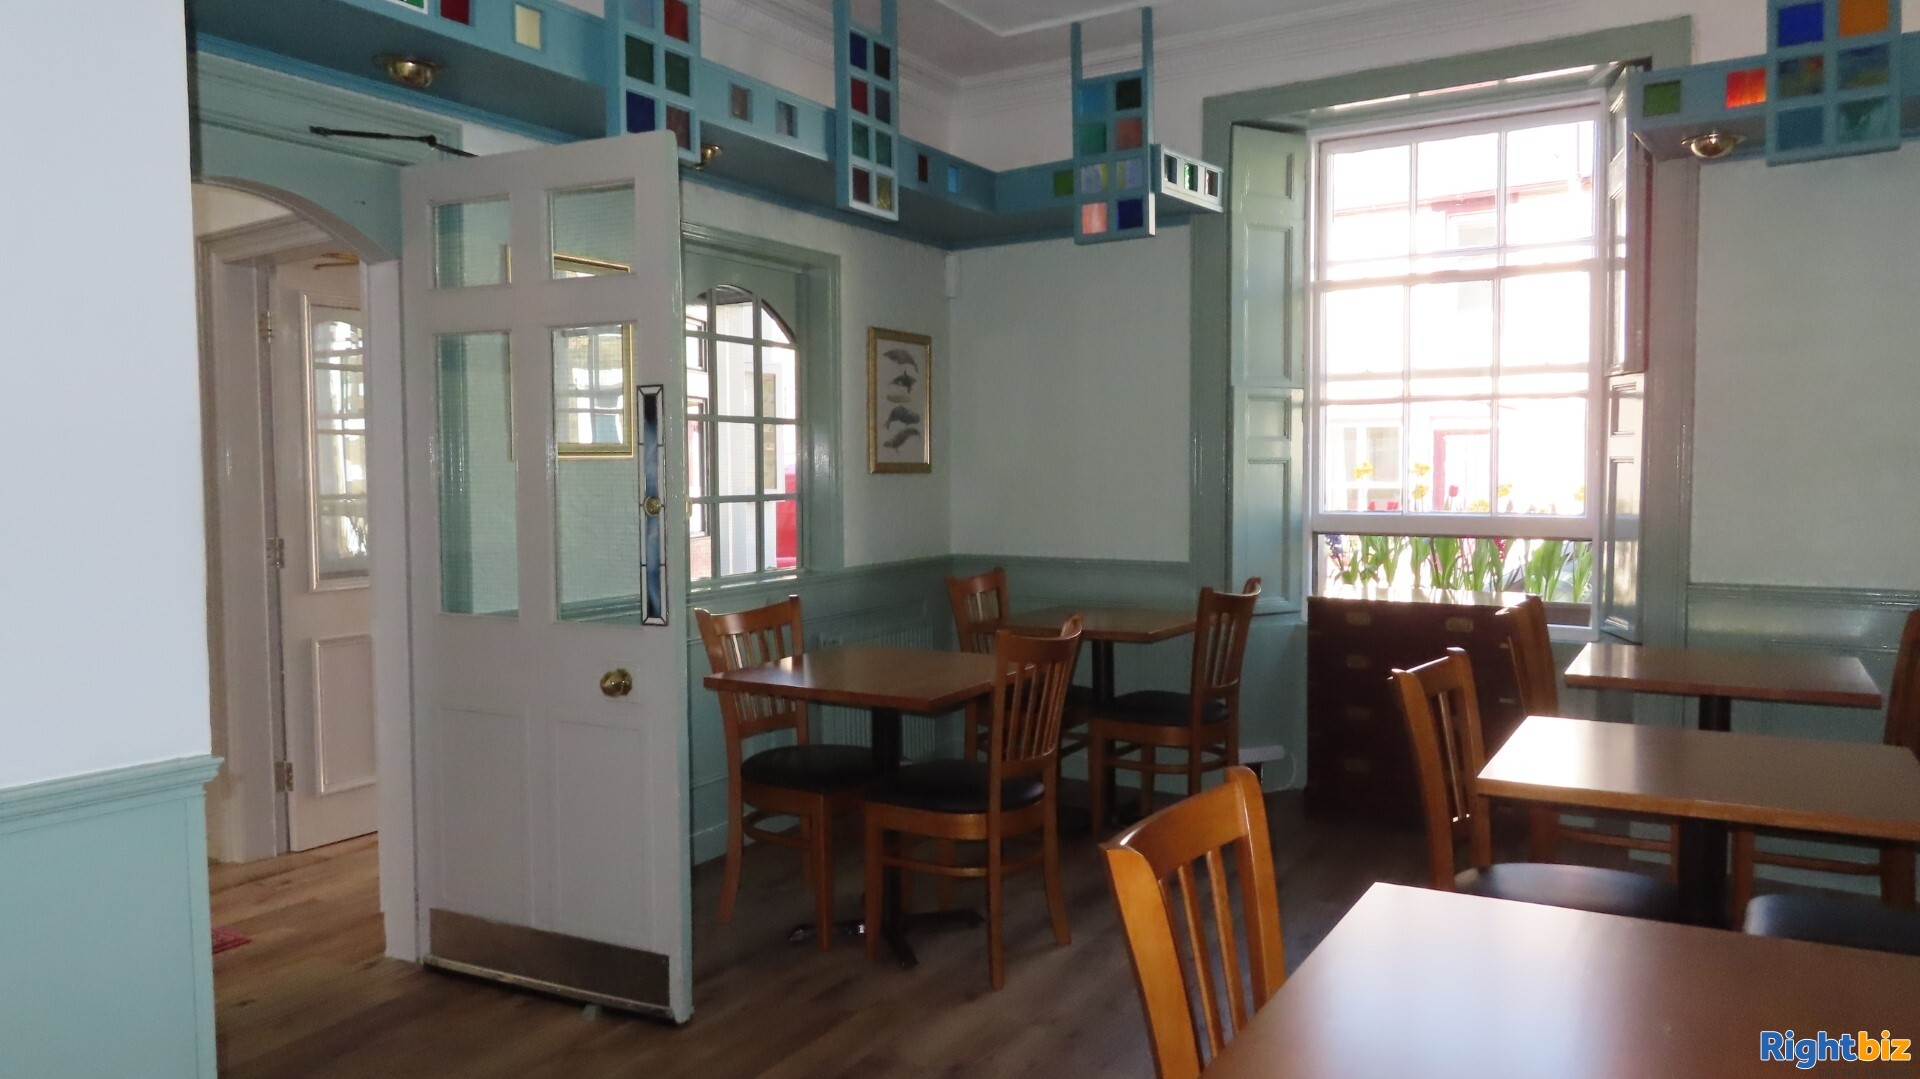 A stunning recently refurbished small Hotel with Restaurant in Kirkcudbright - Image 5